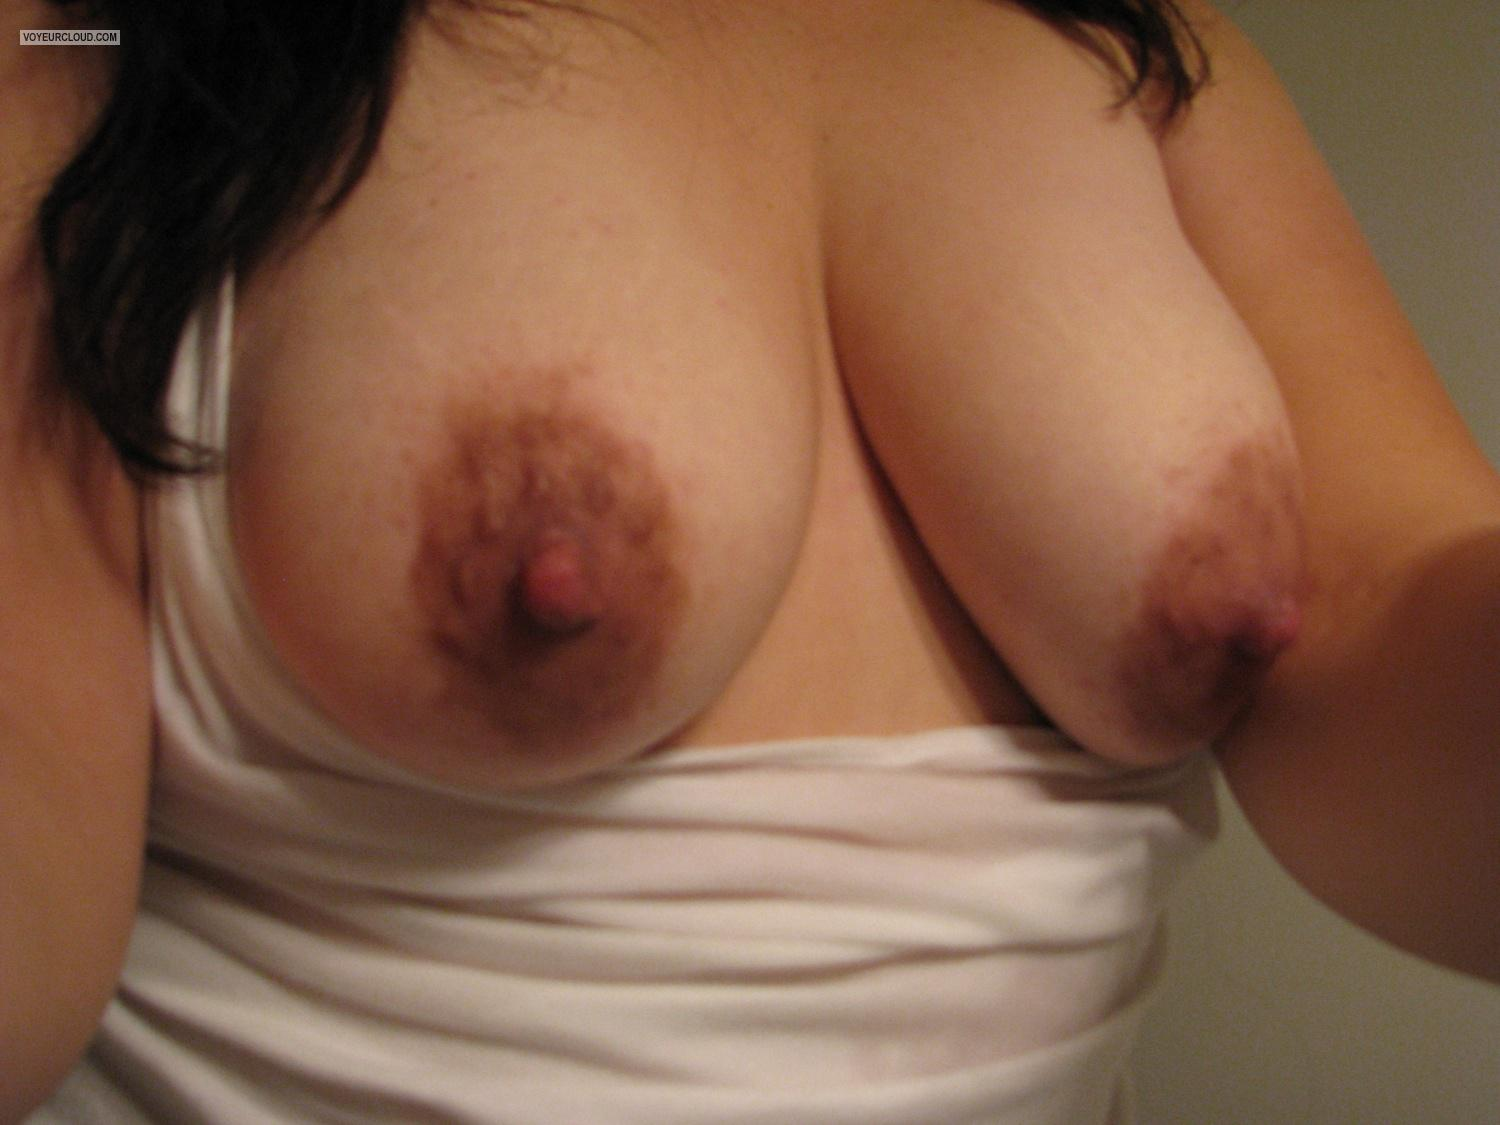 Tit Flash: My Big Tits By IPhone (Selfie) - Anne5 from Canada